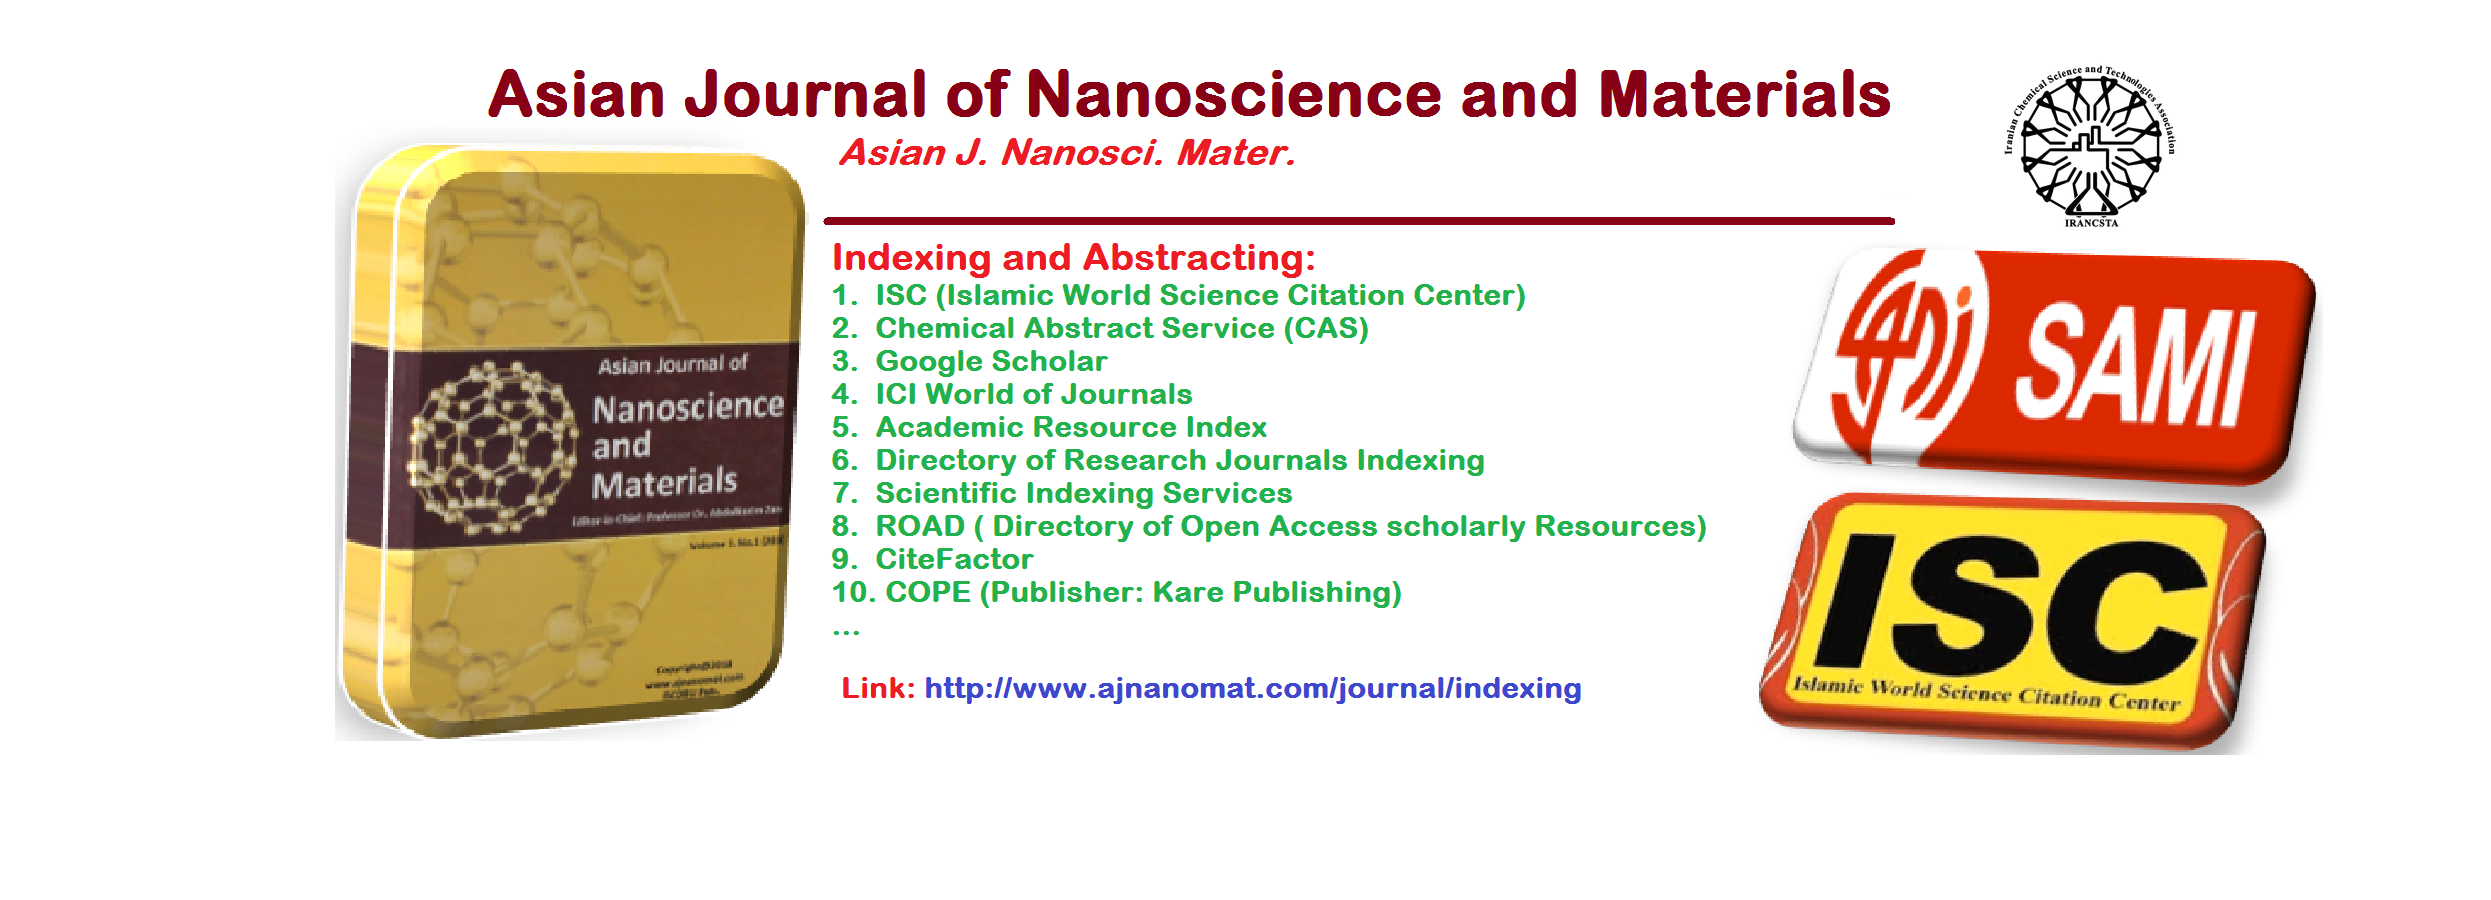 Asian Journal of Nanoscience and Materials